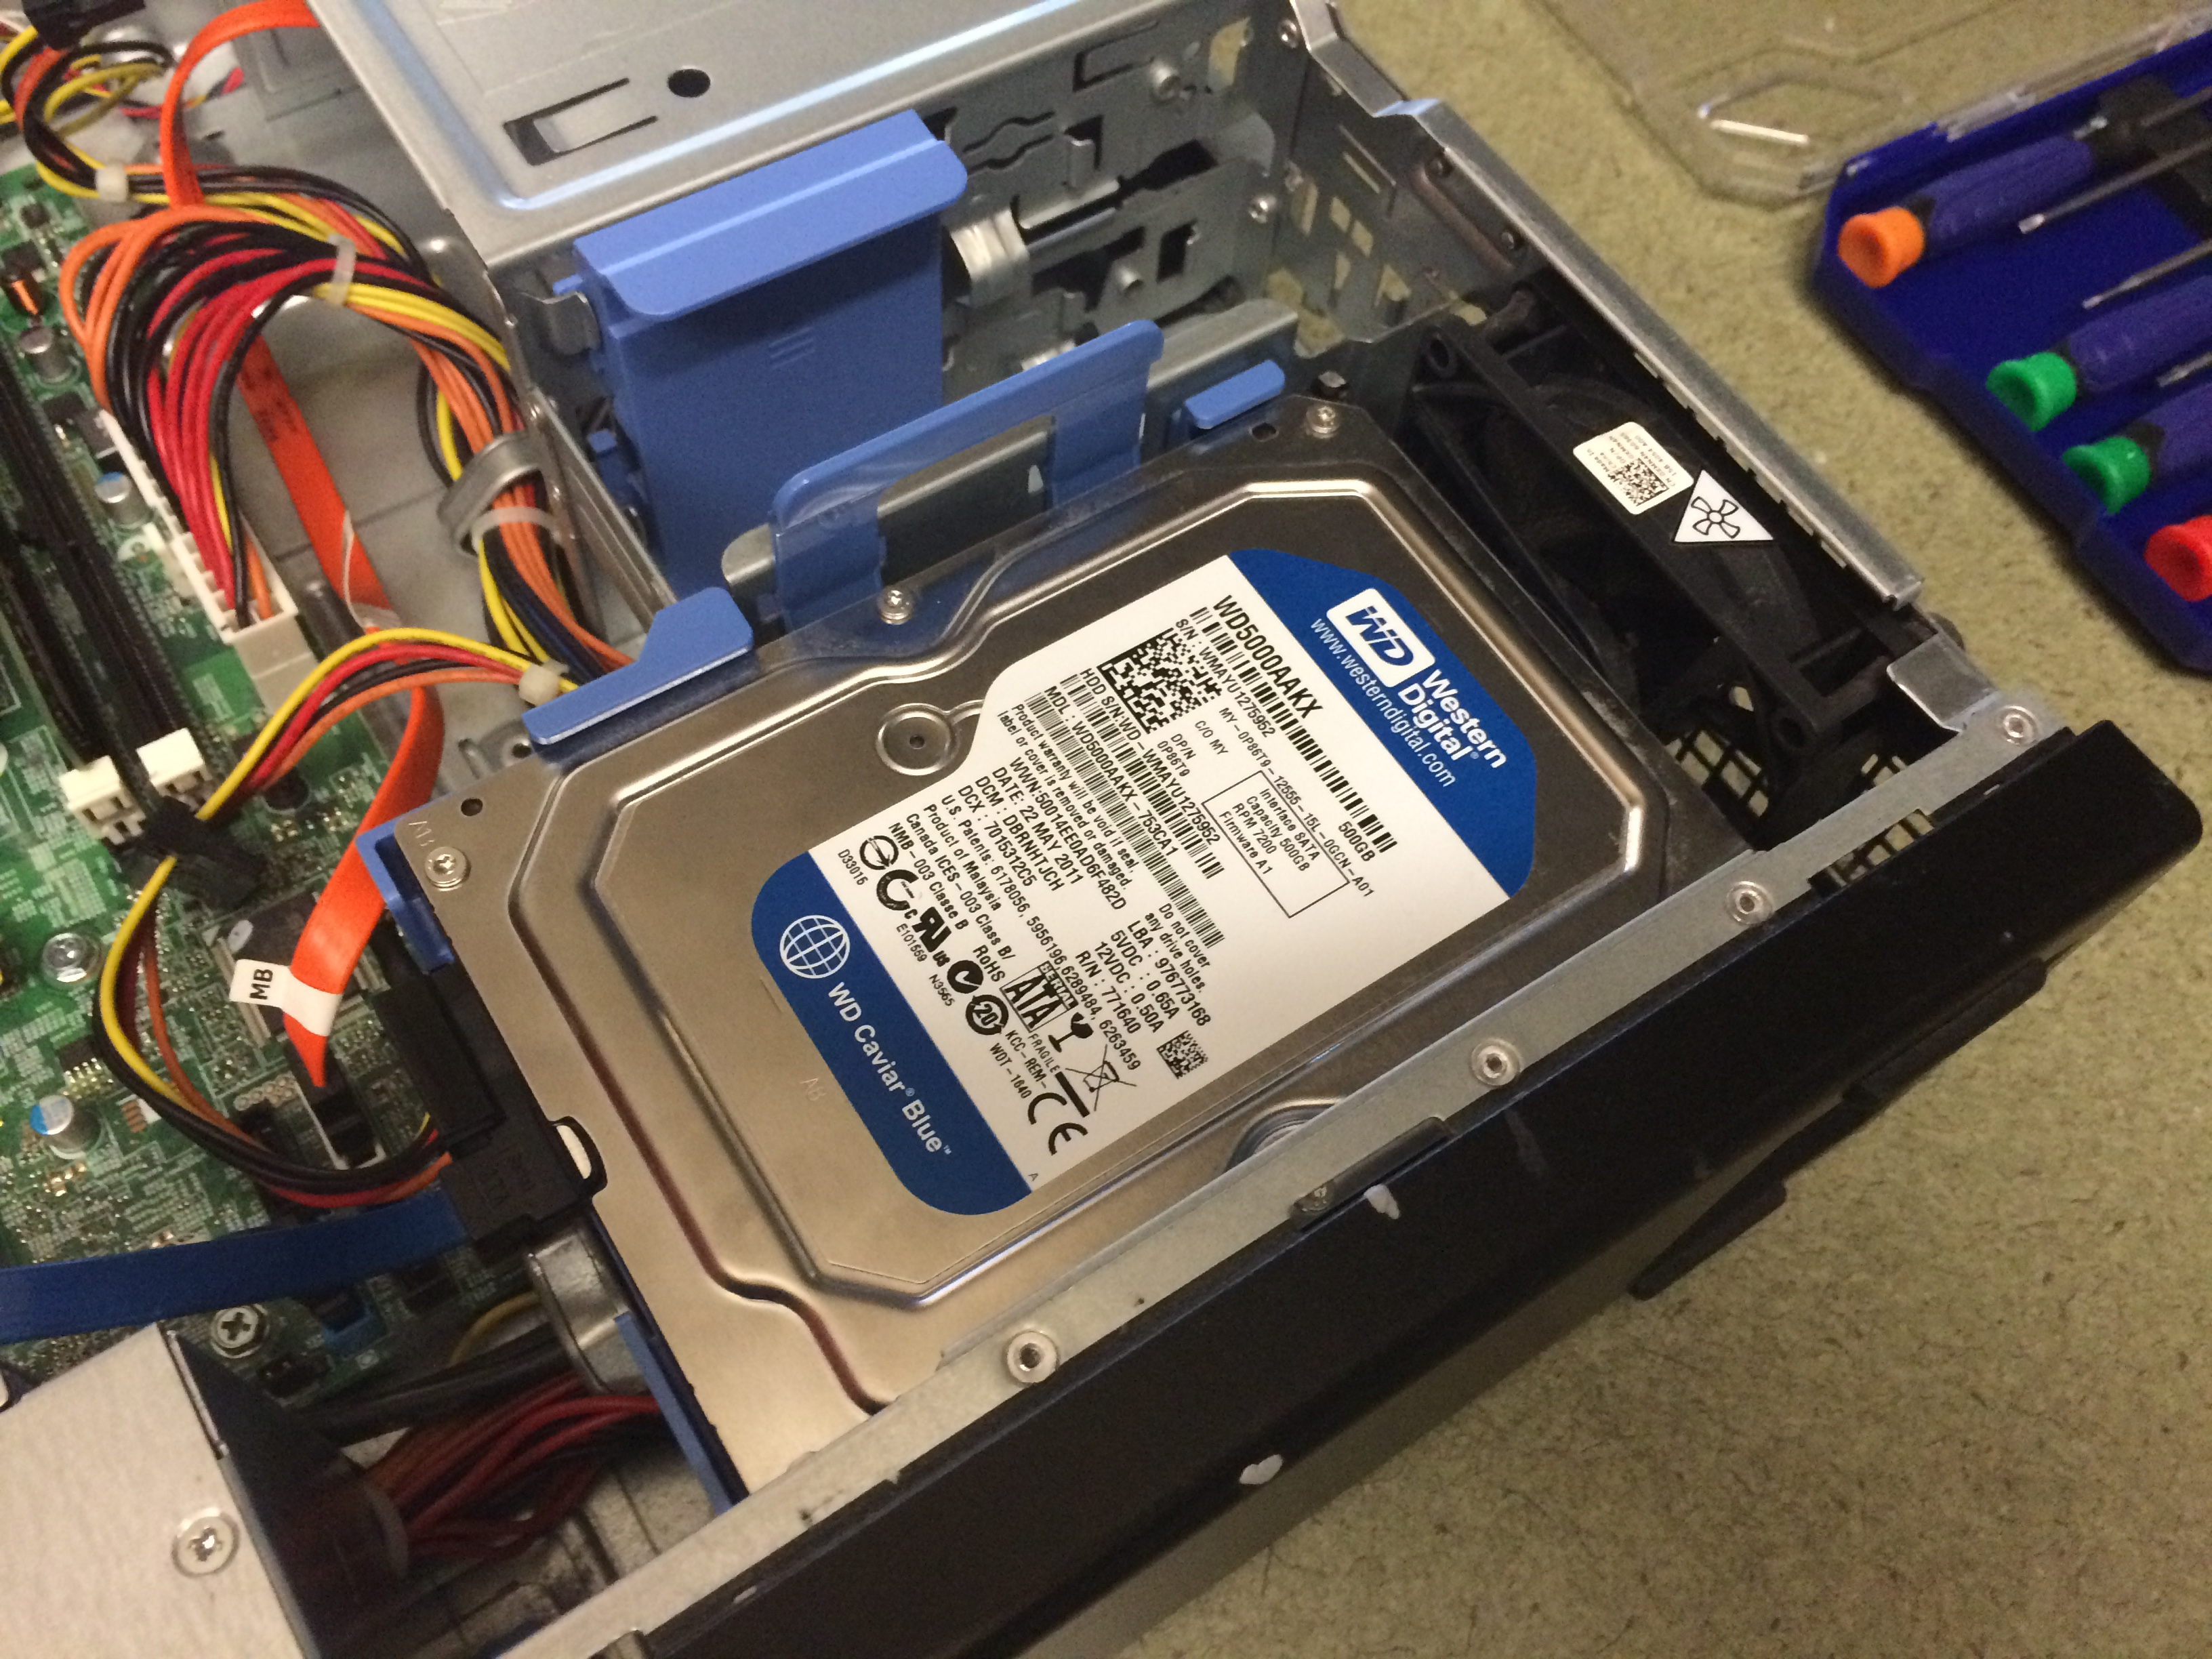 Picture of Put in the Optical Drive